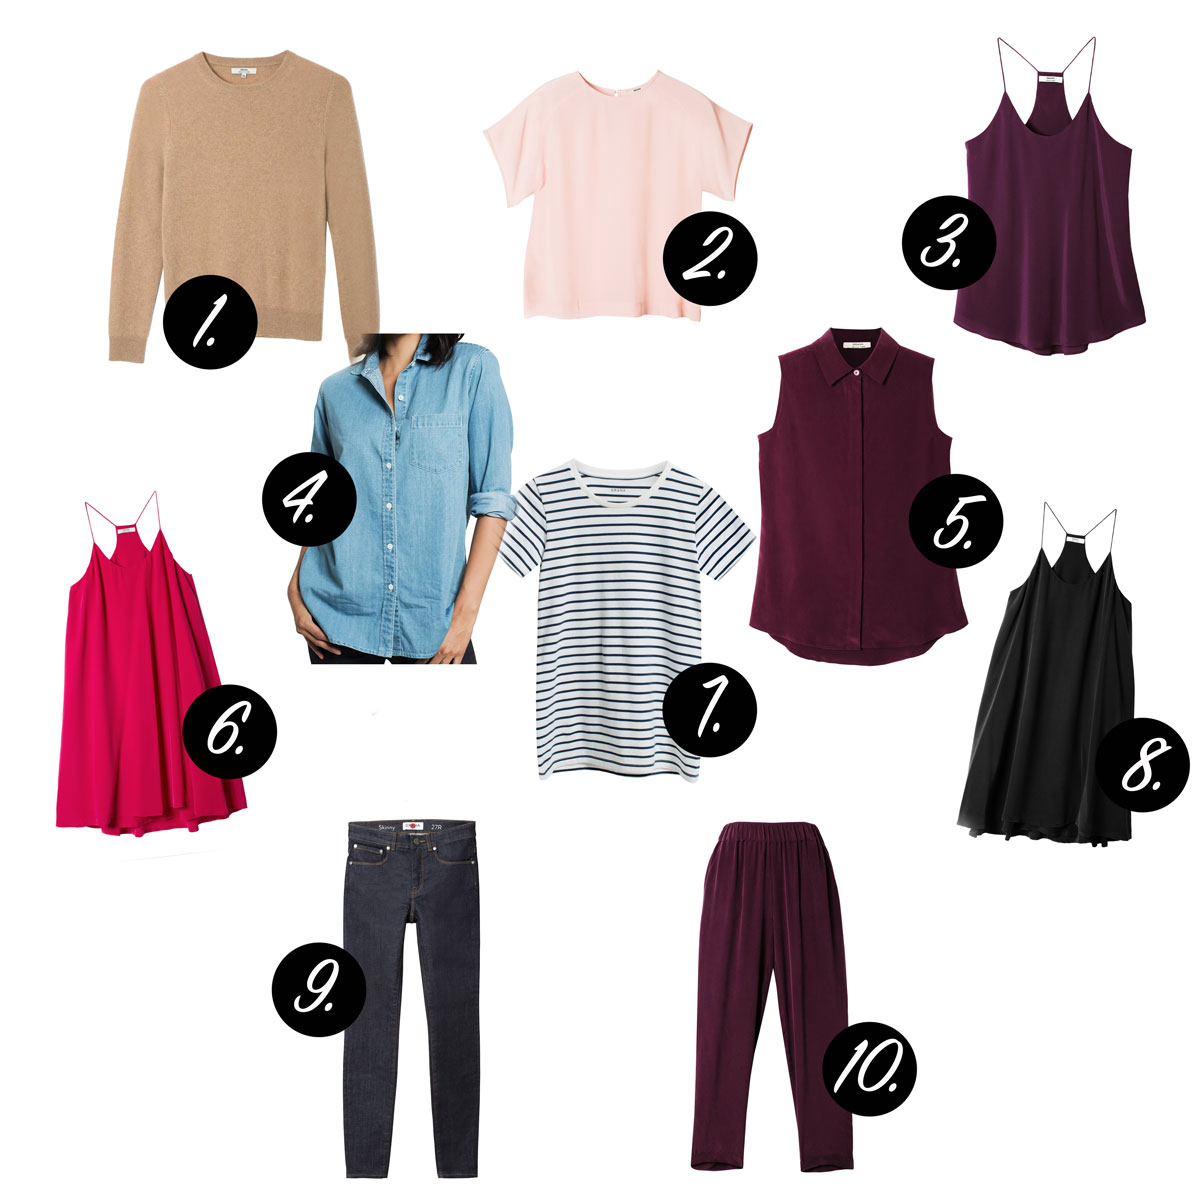 Grana - High quality basics without the steep pricetag!